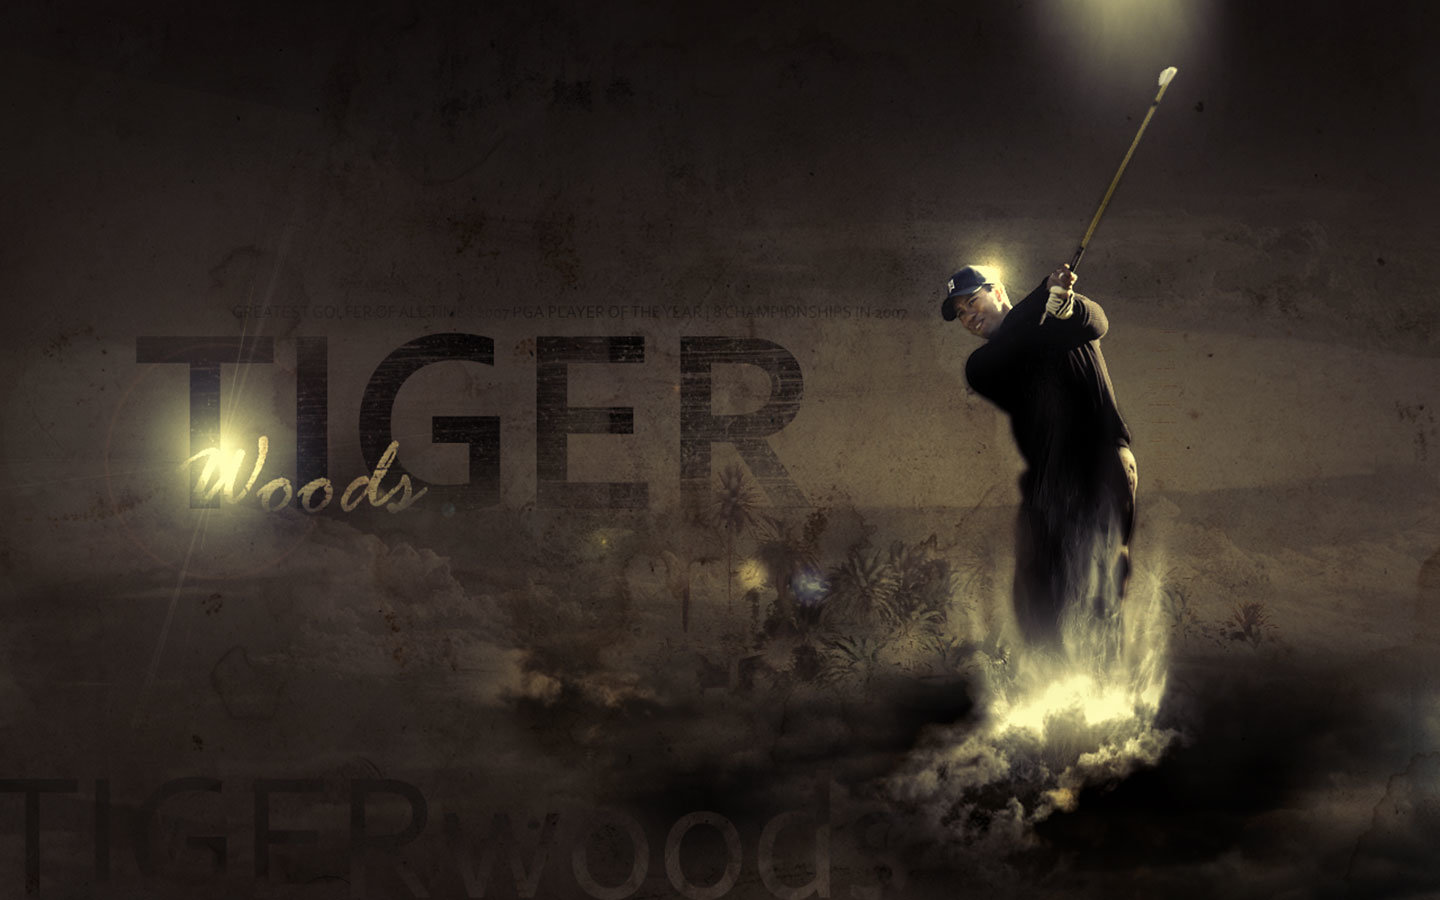 Free Tiger Woods high quality wallpaper ID:8904 for hd 1440x900 desktop